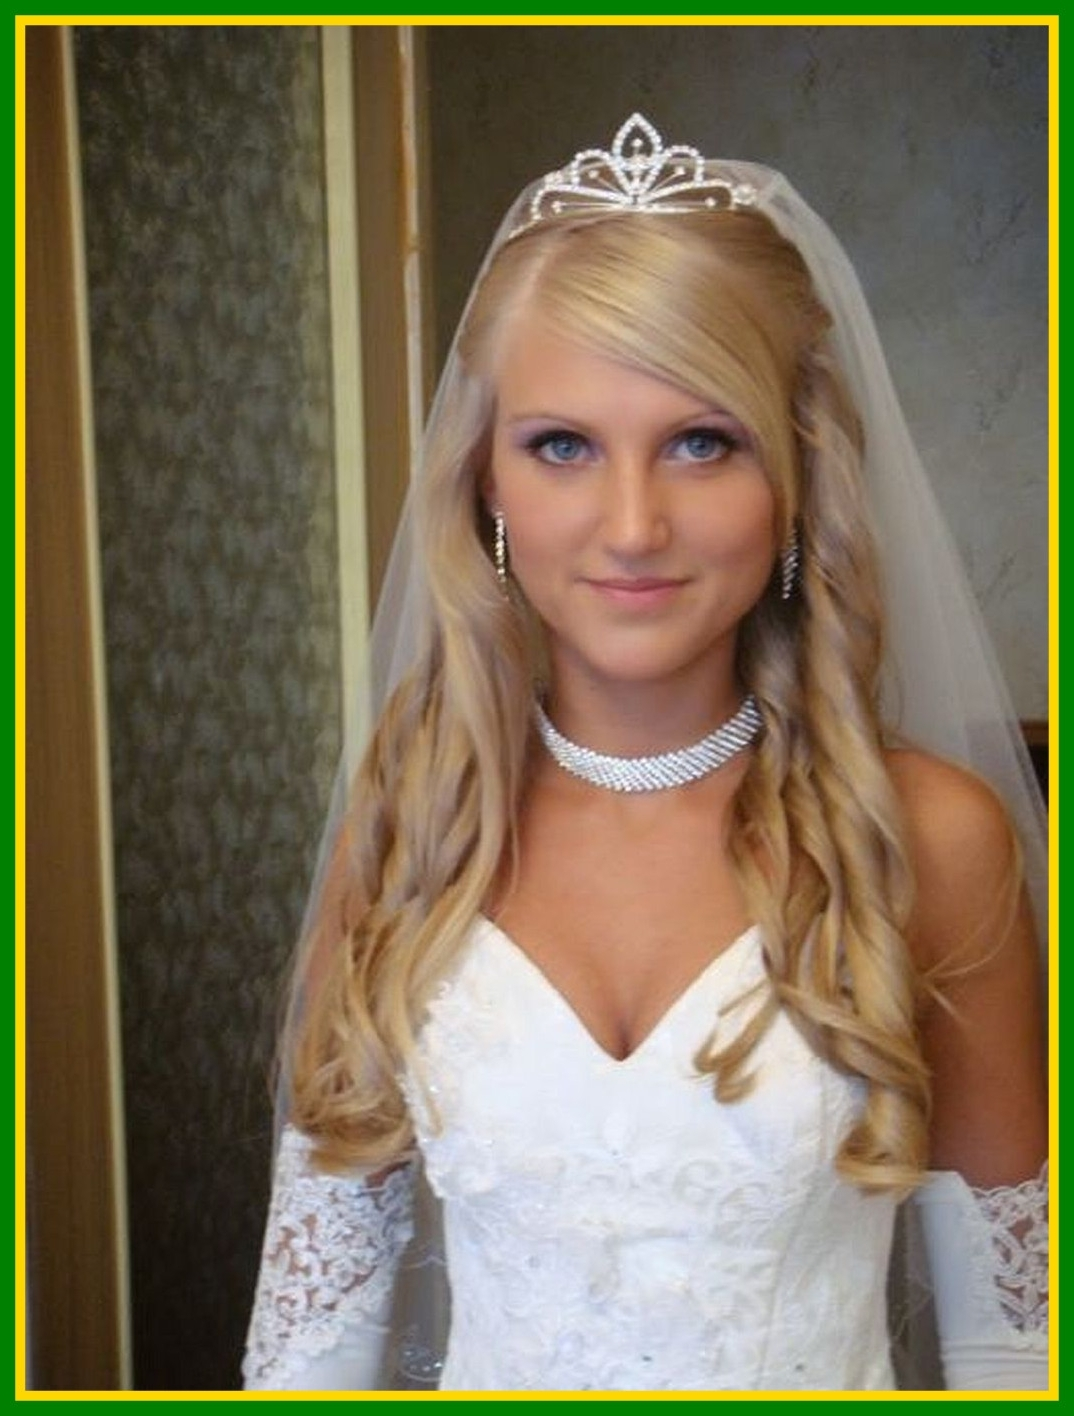 Inspiring Wedding Hair Down With Veil Ideas And Pict For Hairstyles For Well Known Wedding Hairstyles With Tiara And Veil (Gallery 5 of 15)